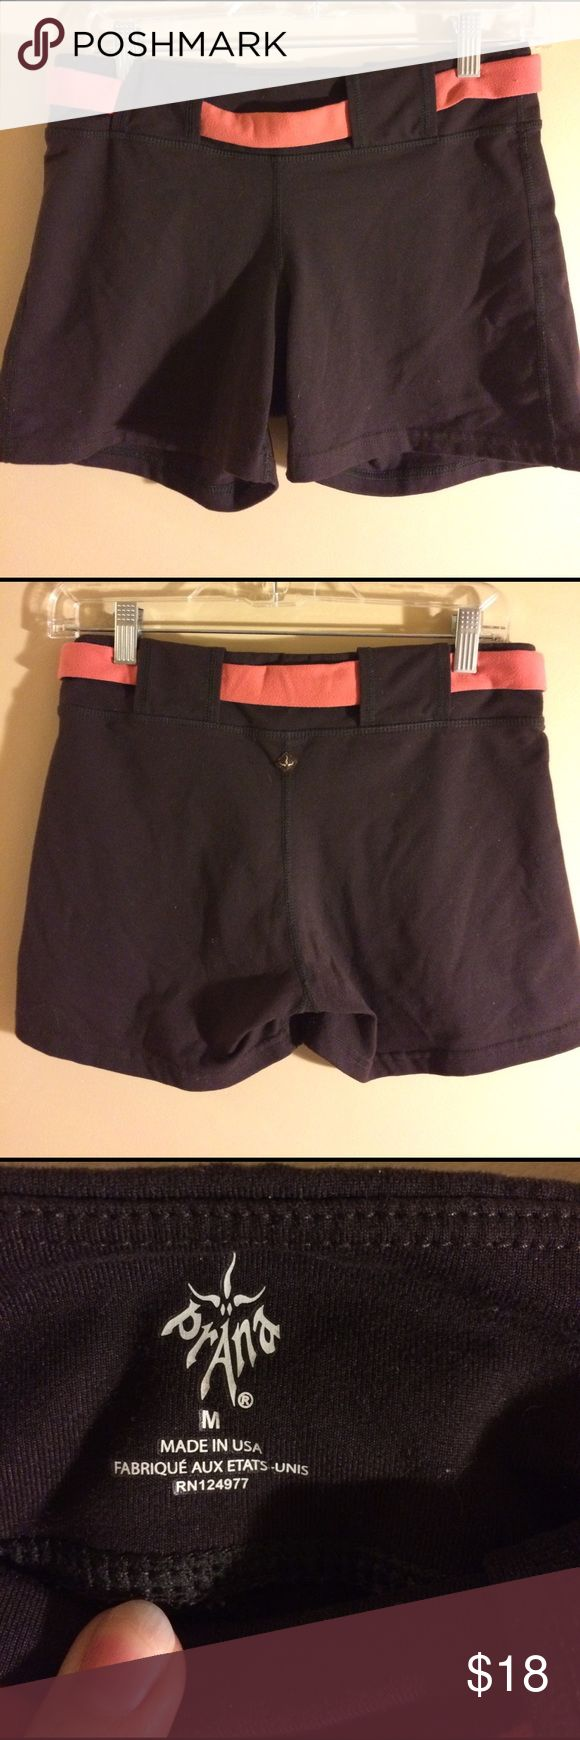 Prana workout shorts women's size medium GUC brown shorts with attached orangey accent belt. Soft recycled polyester and spandex material. Smoke free home. Bundle to save more. Prana Shorts